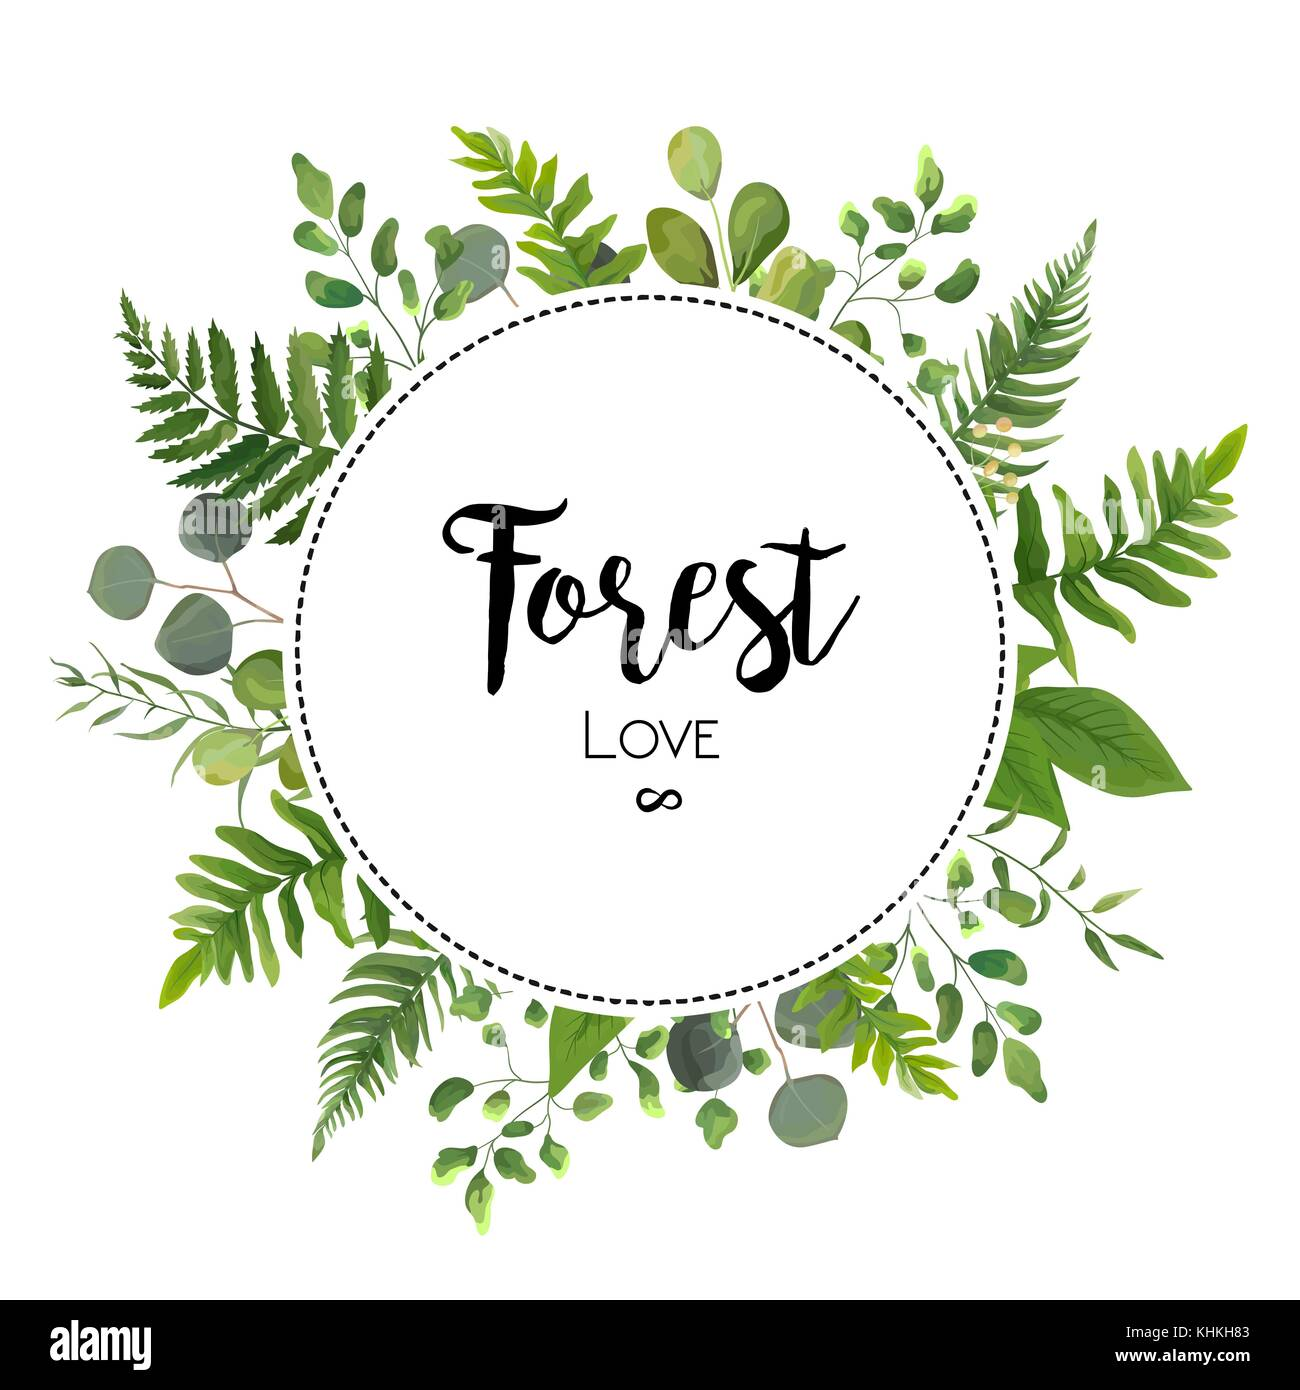 Floral vector invite card design with green eucalyptus fern leaves floral vector invite card design with green eucalyptus fern leaves elegant greenery berry forest round circle wreath beautiful cure frame border prin stopboris Image collections